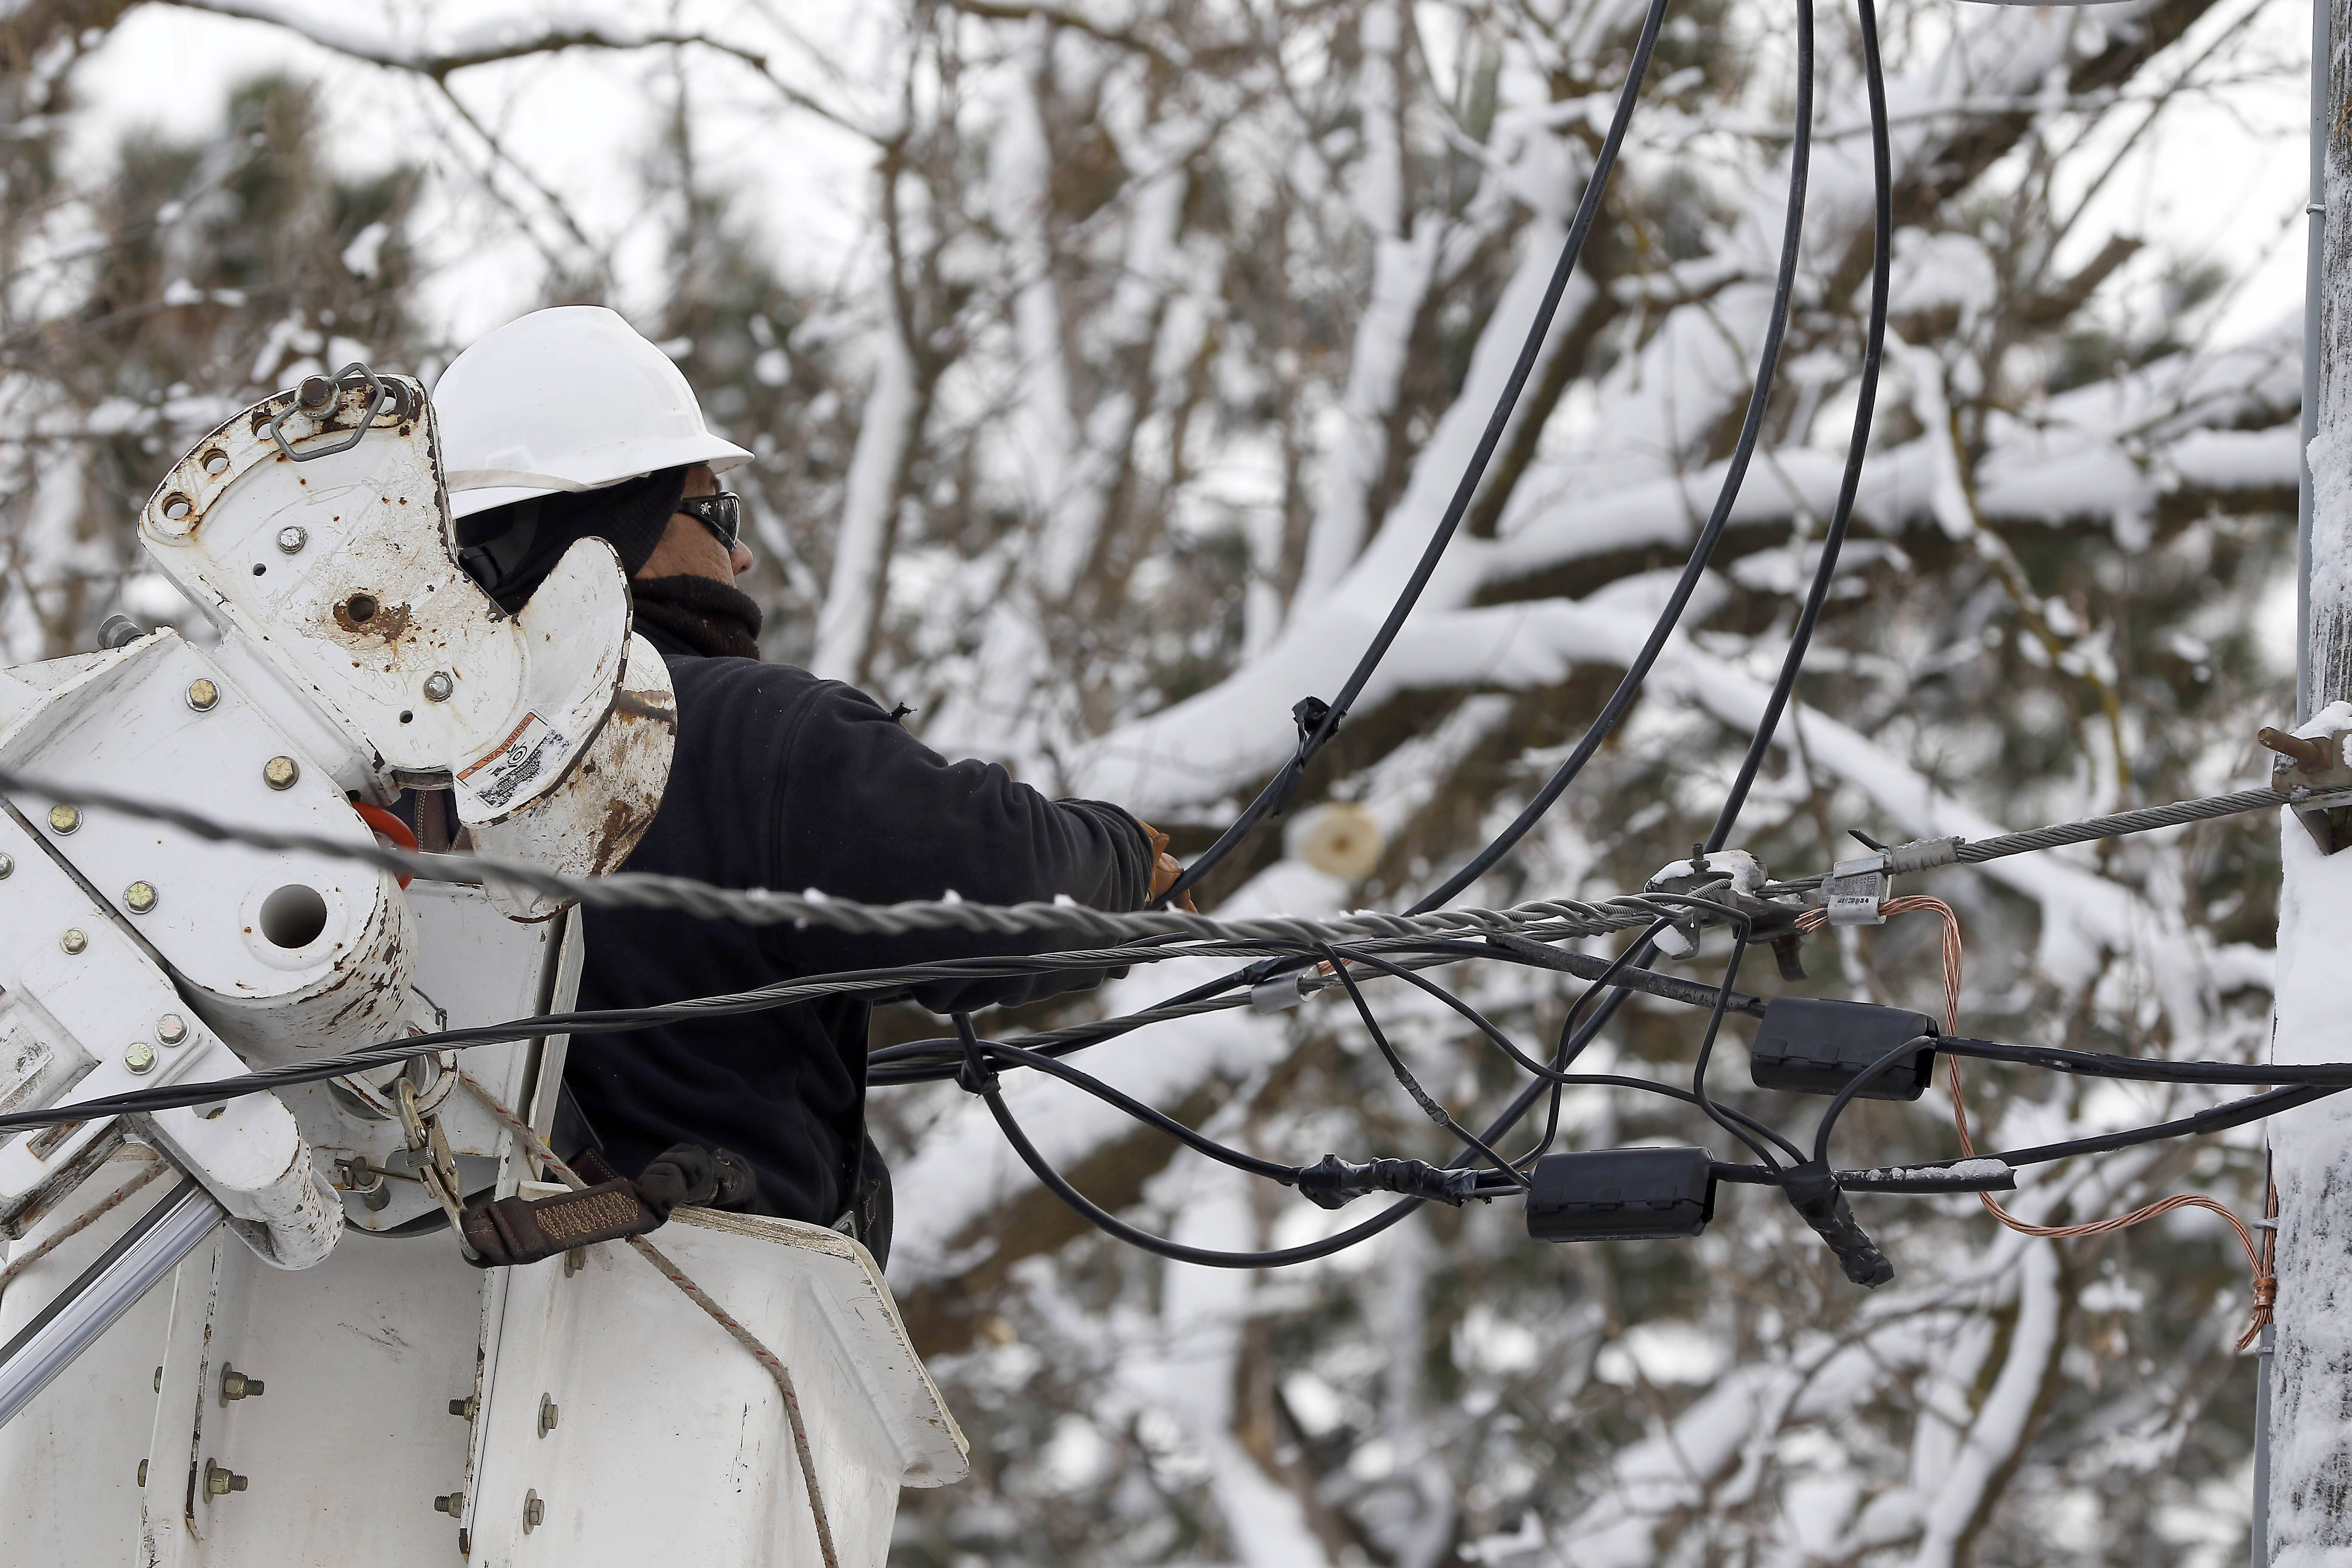 David Roy Ochoa repairs a transformer on the 700 block of Cordial Drive in Des Plaines Wednesday. He is part of an Intren crew from Bolingbrook that was contracted by ComEd after 350,000 customers lost power.